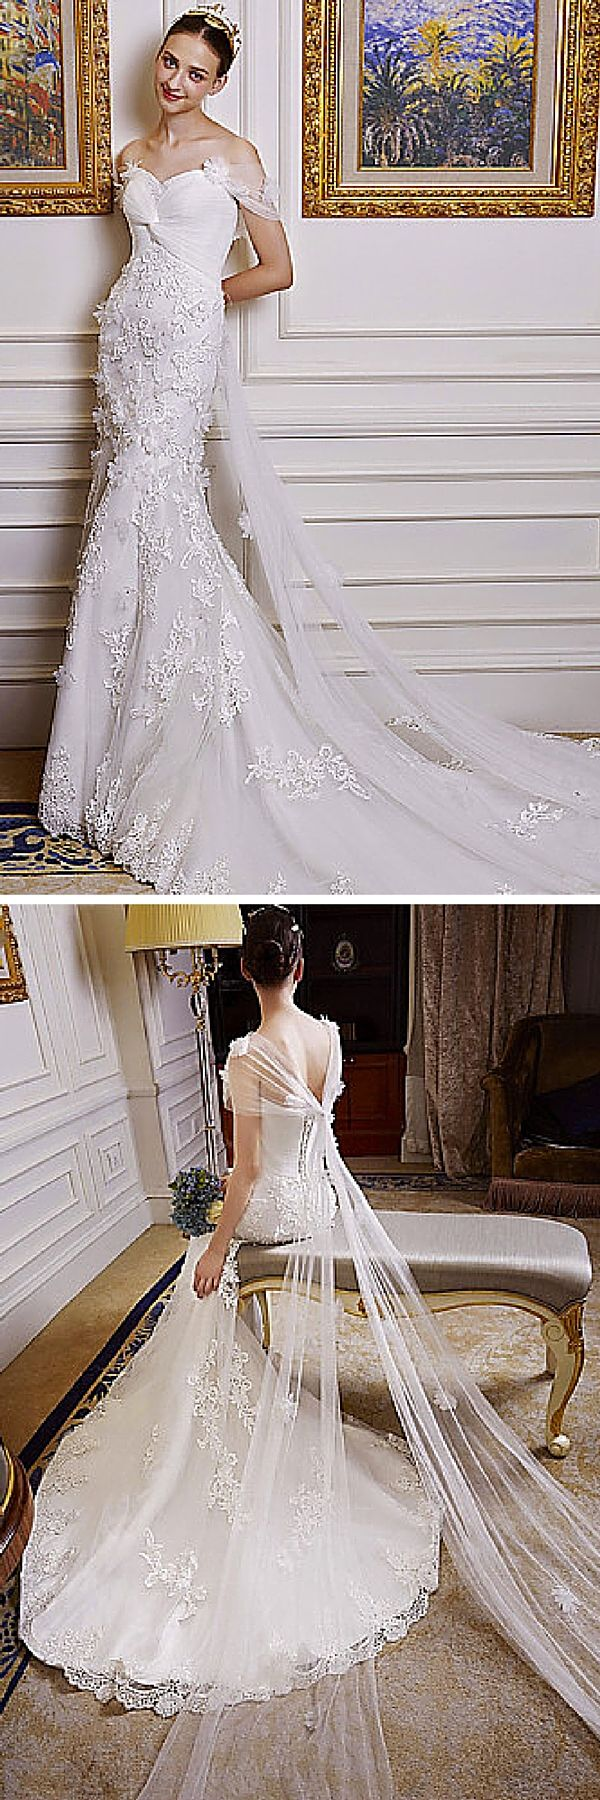 Popular This wedding gown is so romantic It has to be one of the prettiest mermaid